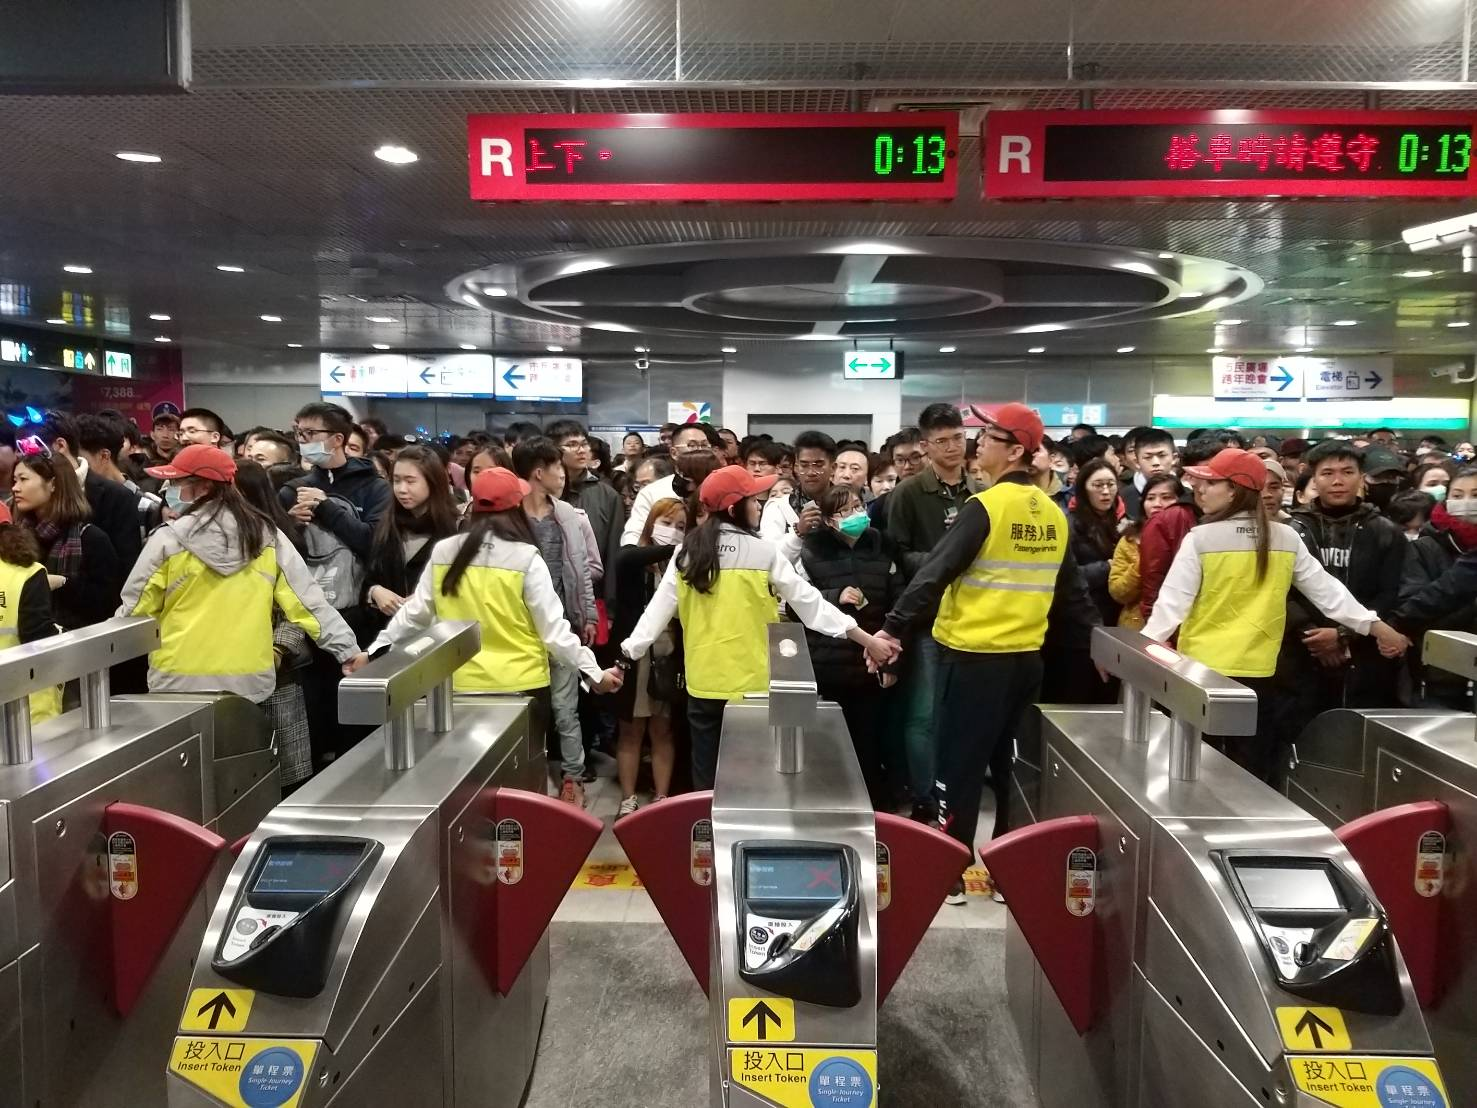 MRT staff and crowd on New Year's Eve.